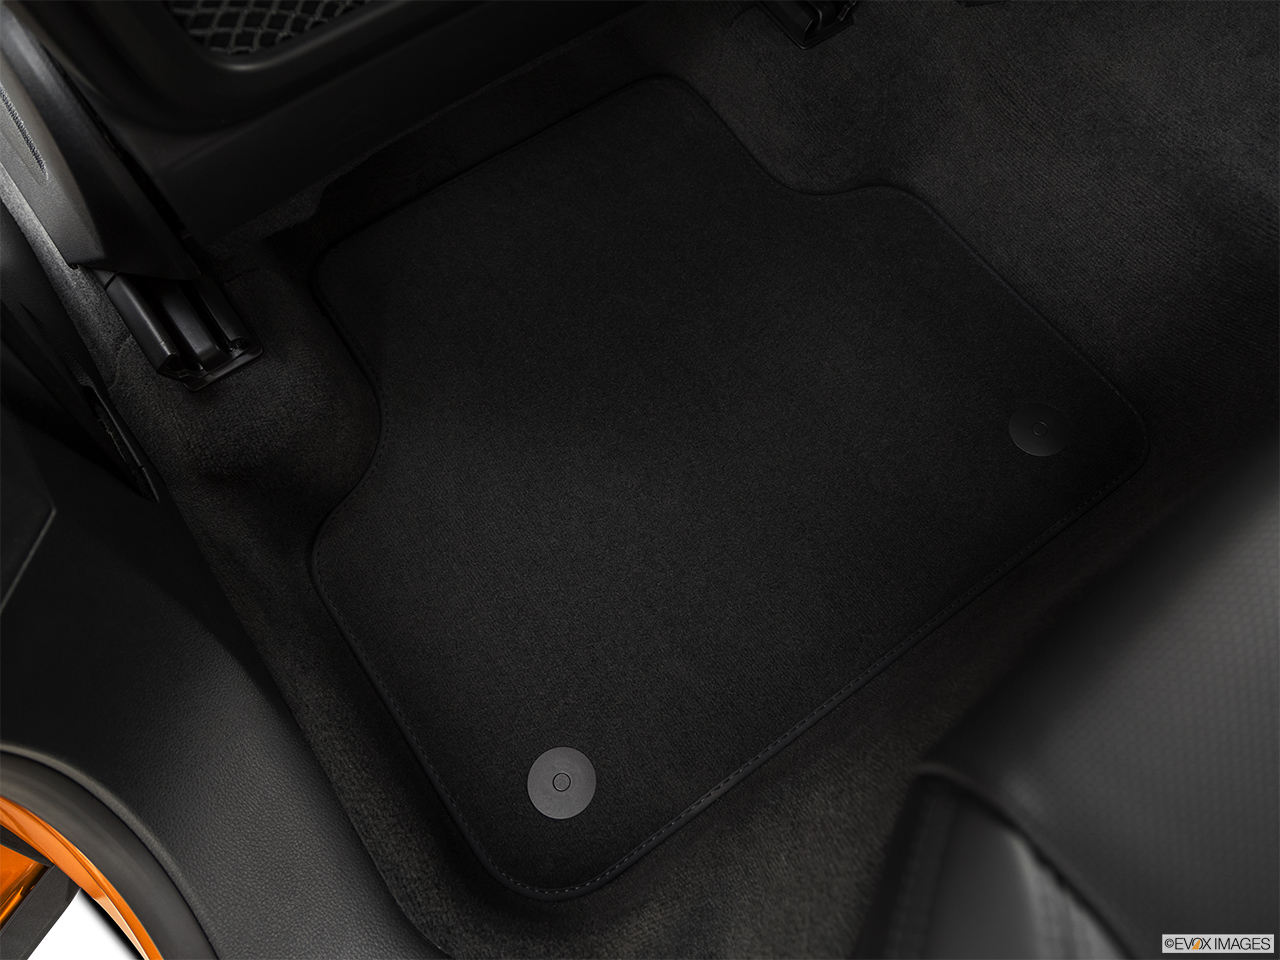 2019 Audi Q8 Prestige 3.0 TFSI Rear driver's side floor mat. Mid-seat level from outside looking in.